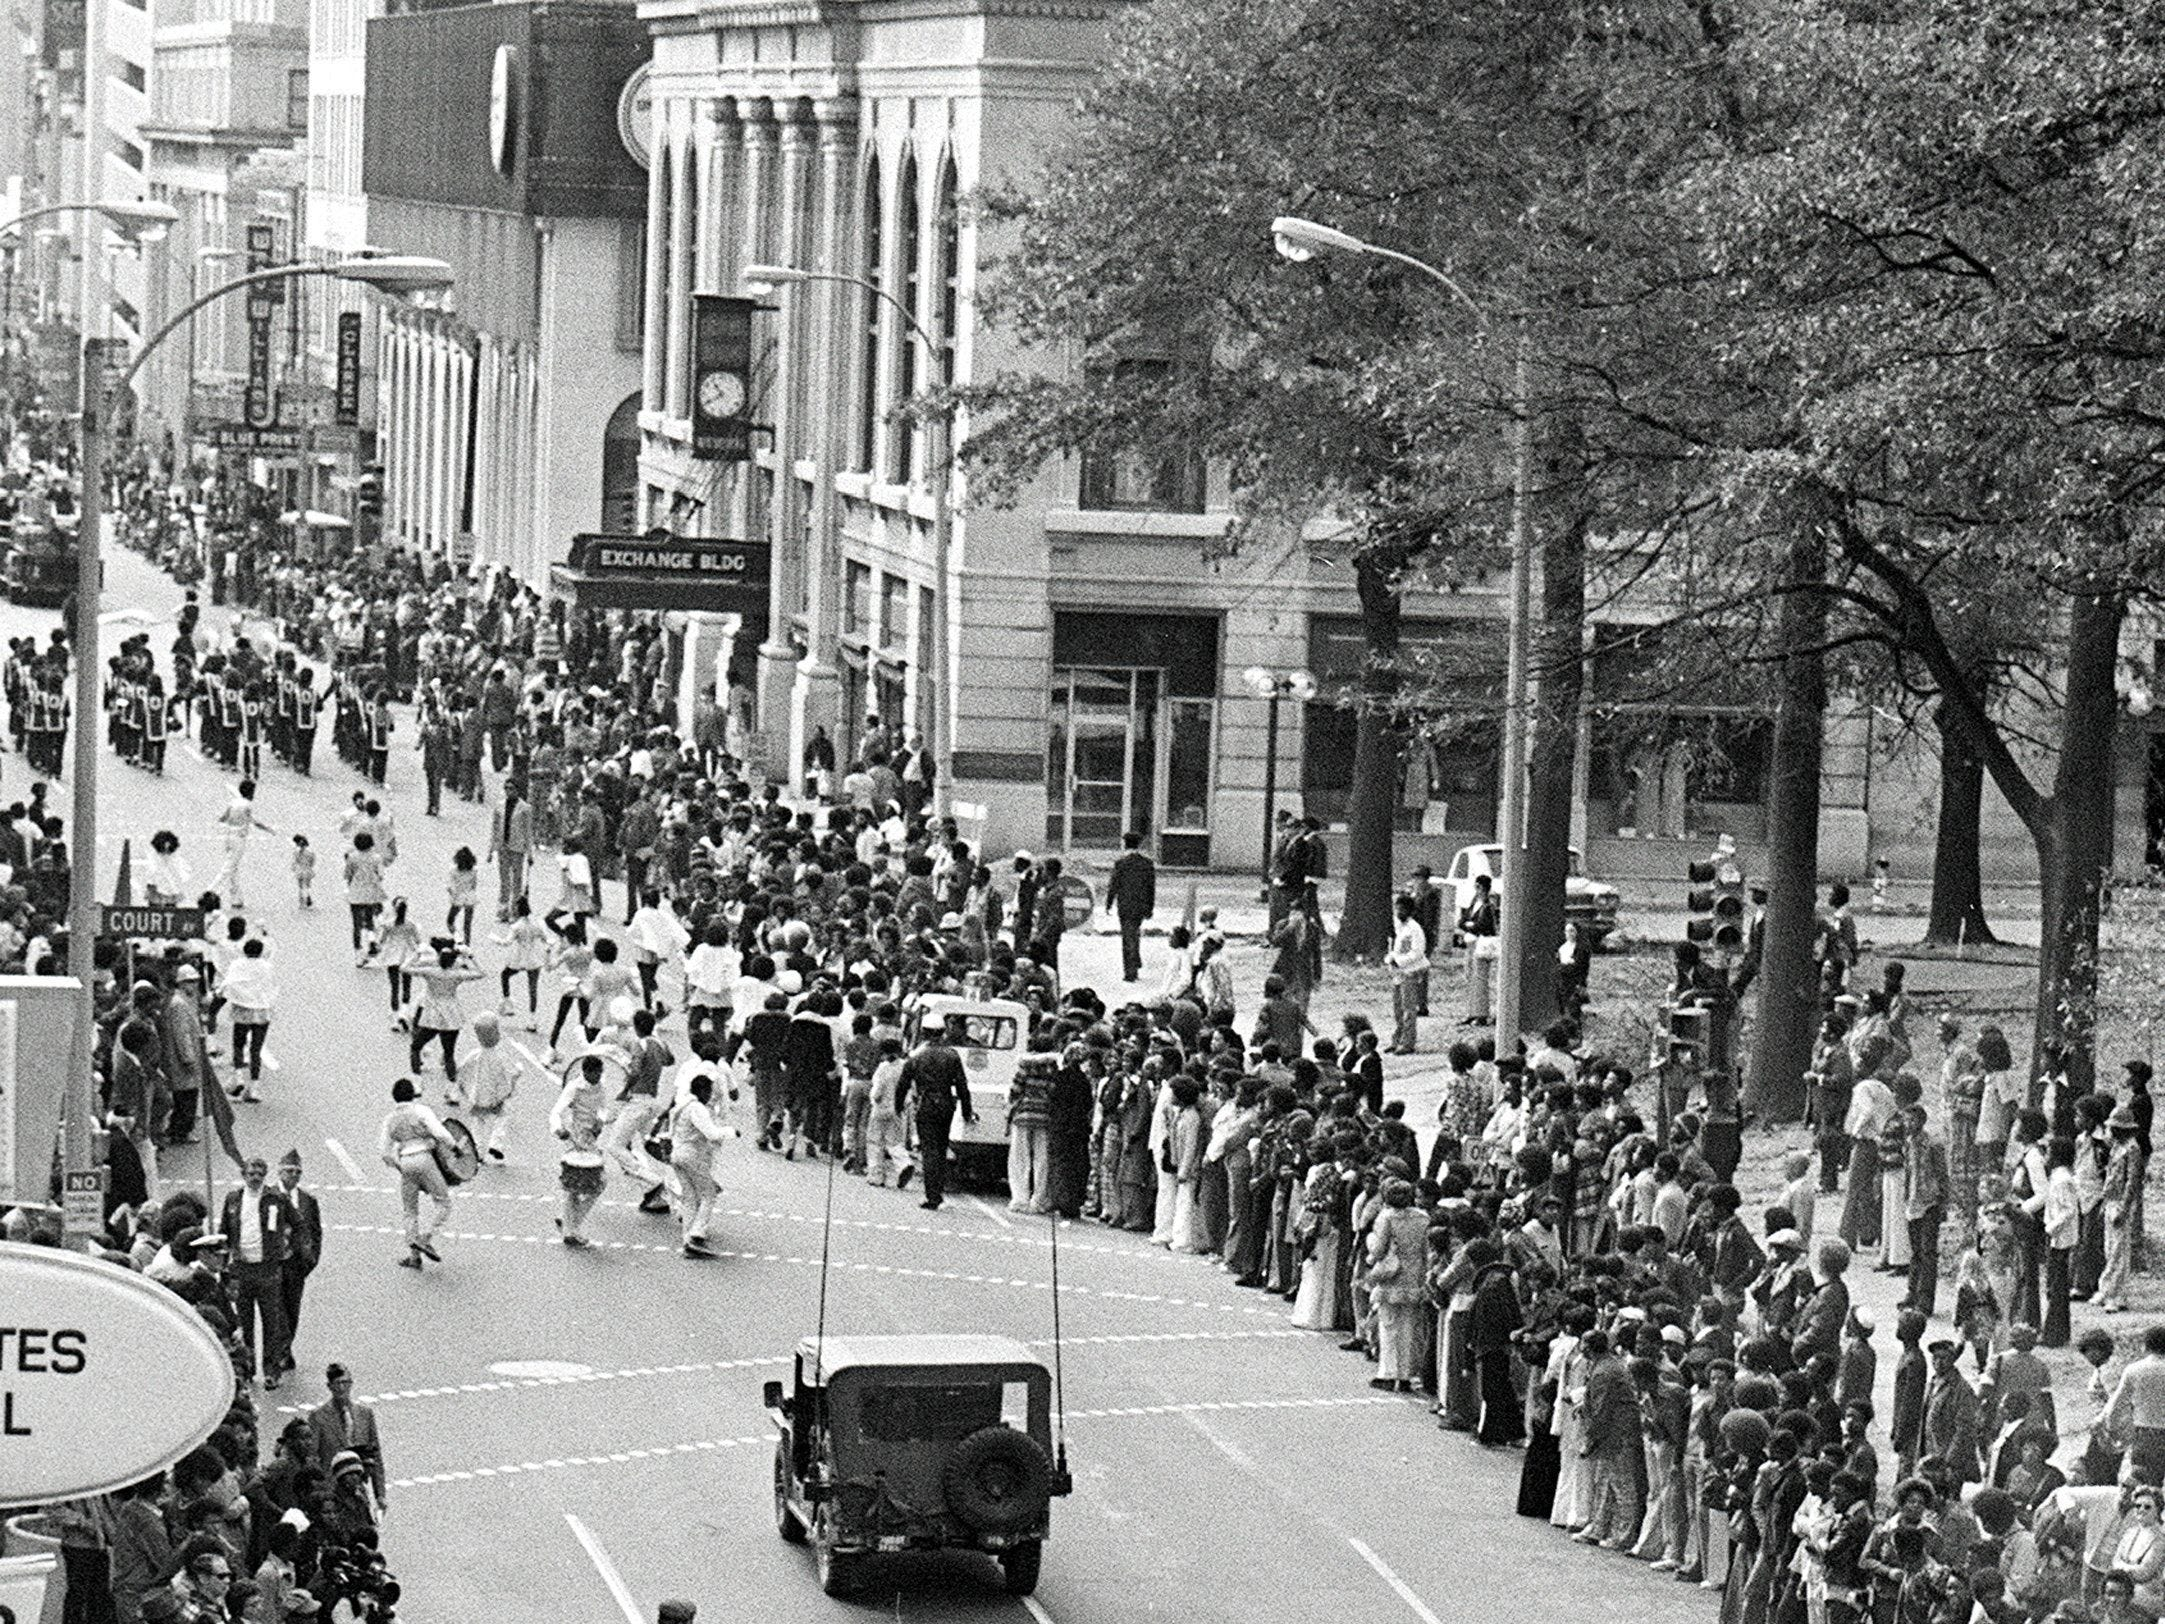 The traditional Veterans Day parade down Main Street moved one block east, to Second Street, on 11 Nov 1975 because of construction of the Mid-America Mall on Main. School bands, ROTC units and national Guard tracked artillery moved down Second from Exchange to Beale, taking two hours to pass the reviewing stand. One guard vehicle on its way to the parade pulverized 611 raised pavement markers on North Parkway between Watkins and Thomas, city officials said. Frank Palumbo, city engineer and public works director, said it will cost about $4,000 to replace the ceramic and plastic markers.